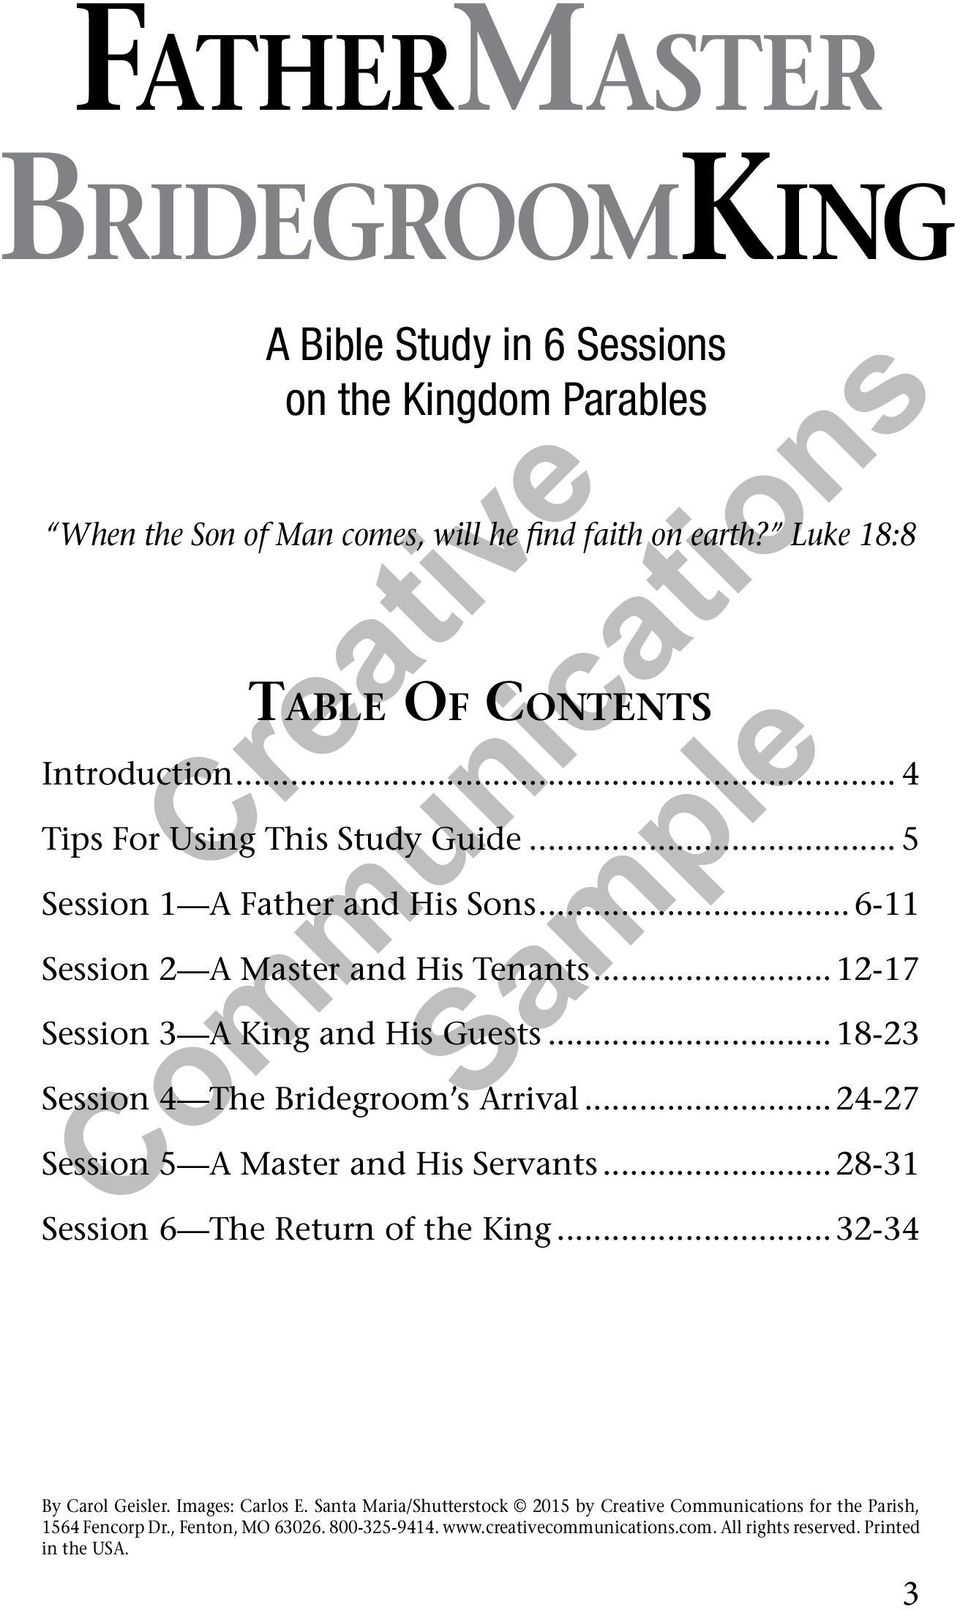 ..12-17 Session 3 A King and His Guests...18-23 Session 4 The Bridegroom s Arrival...24-27 Session 5 A Master and His Servants...28-31 Session 6 The Return of the King.